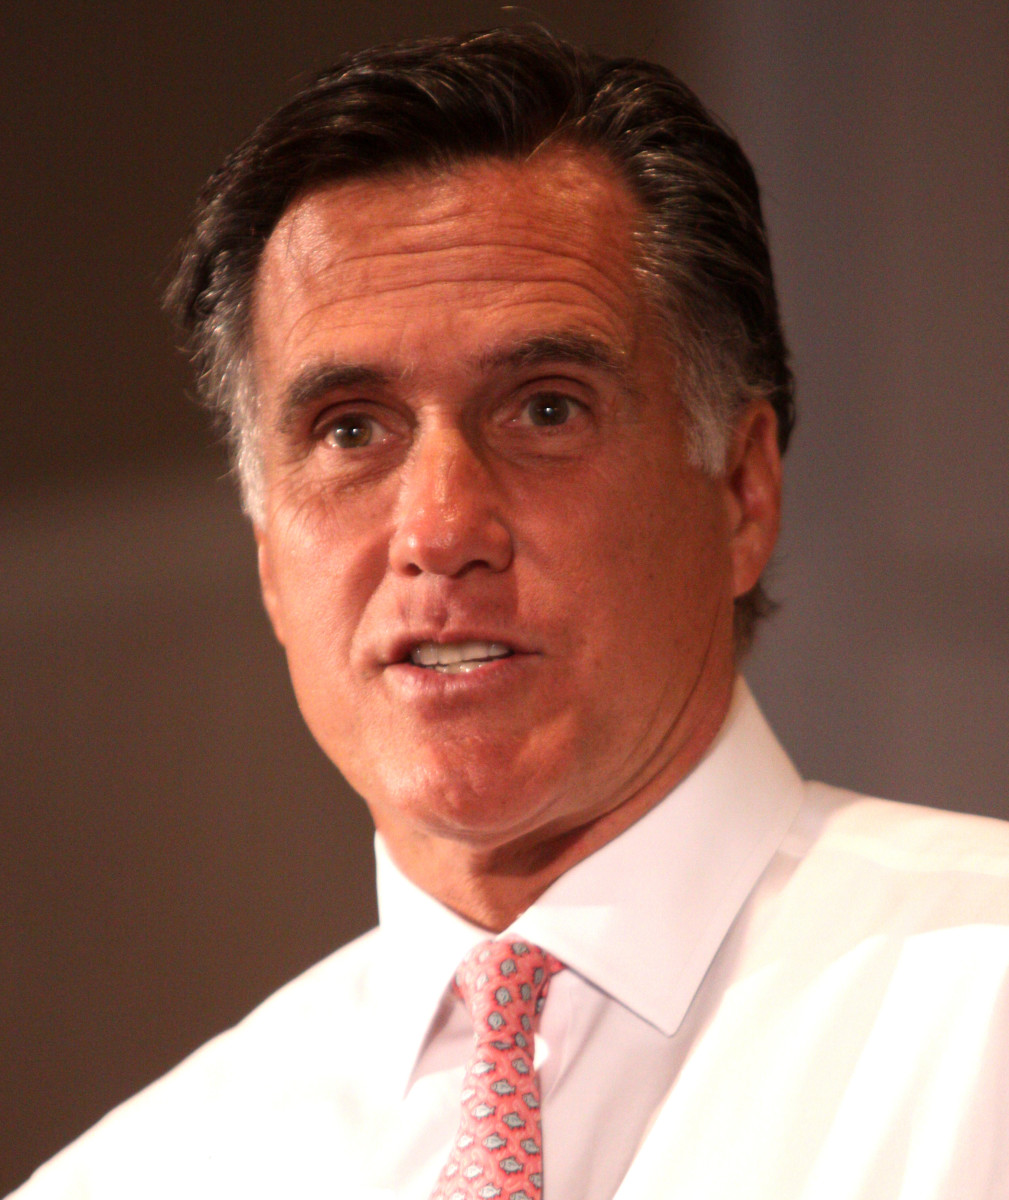 Mitt Romney, Republican Presidential Nominee and former Governor of Massachusetts.